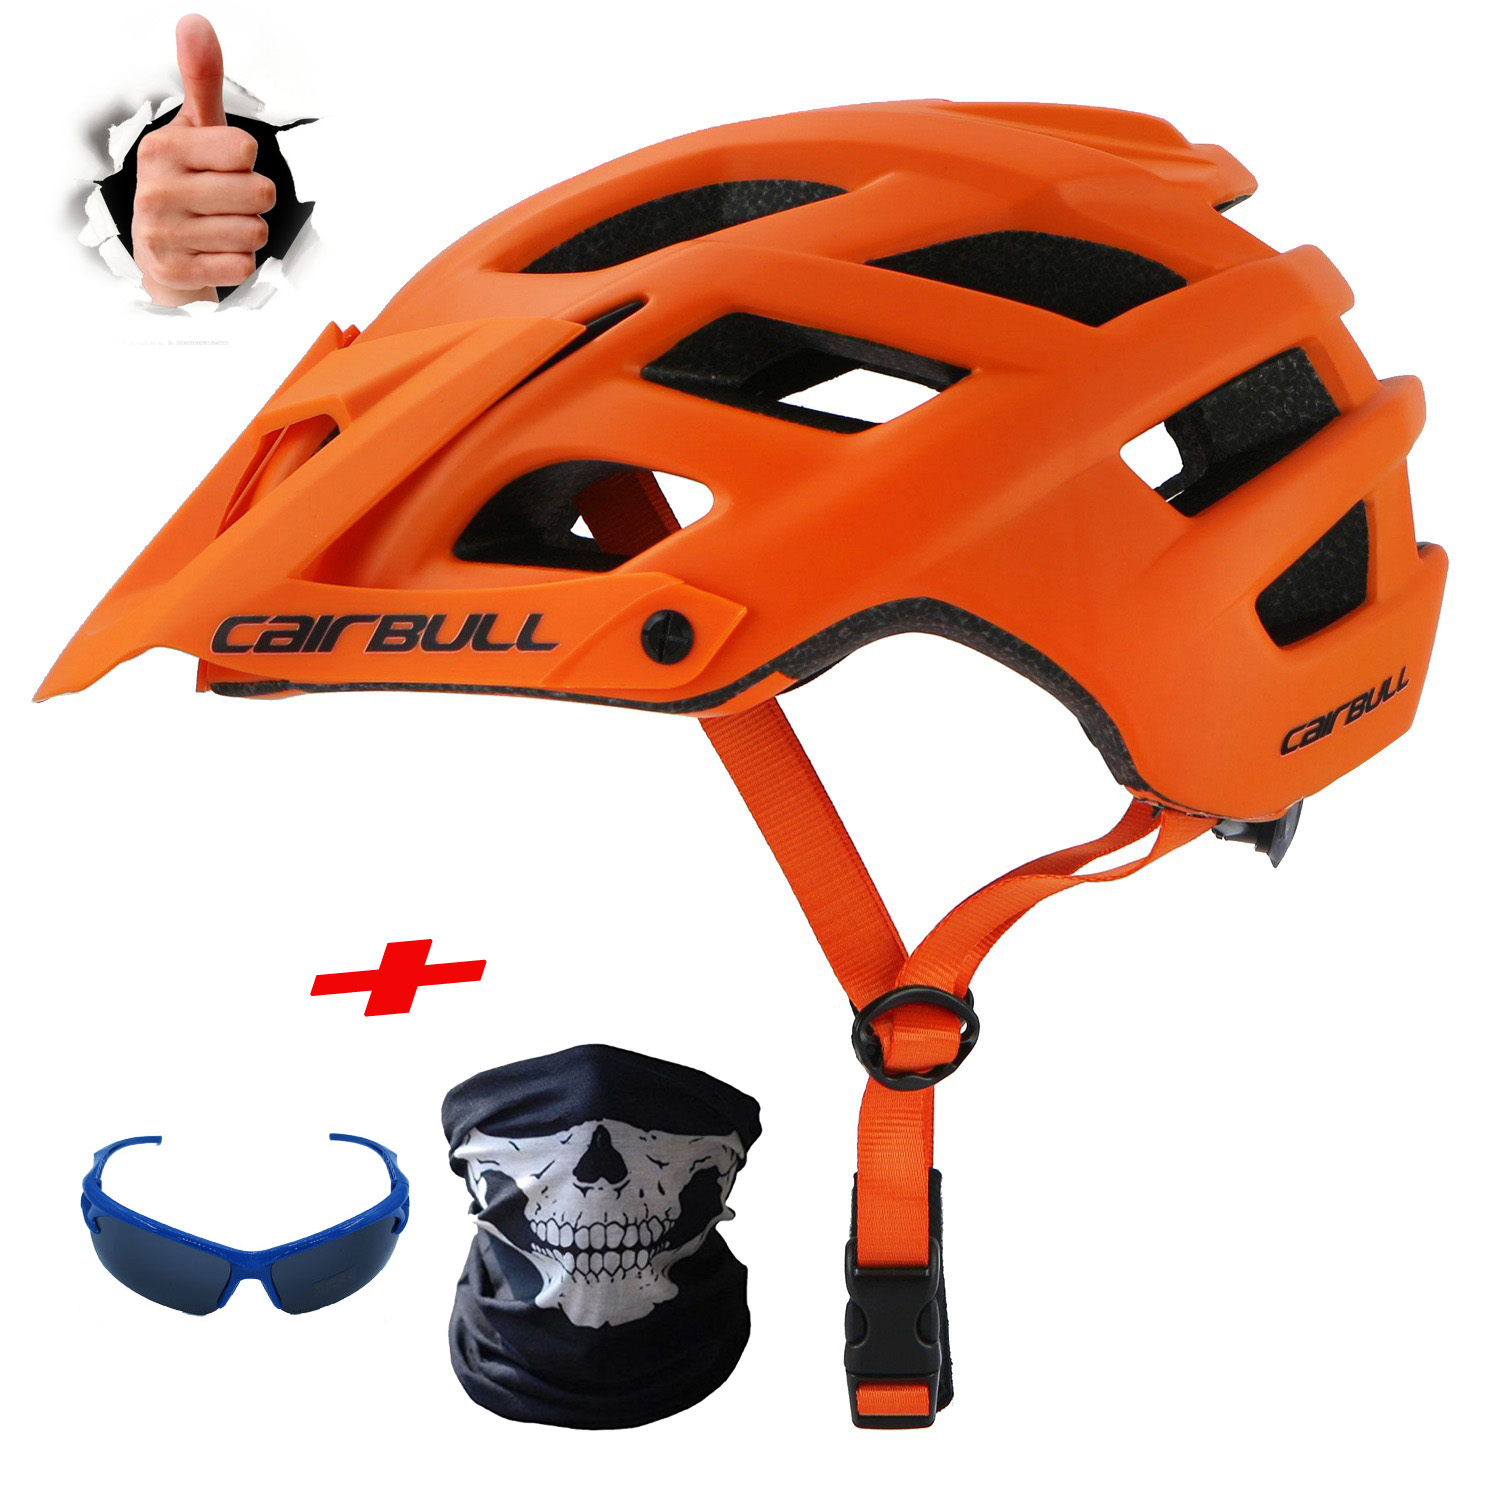 Helmet Mountain  Bike TRAILXC  Men CAIRBULLBicycle Helmet mtb Ultralight Road Helmet Integ-Molded Cycle cross BMX Cycling Helmet